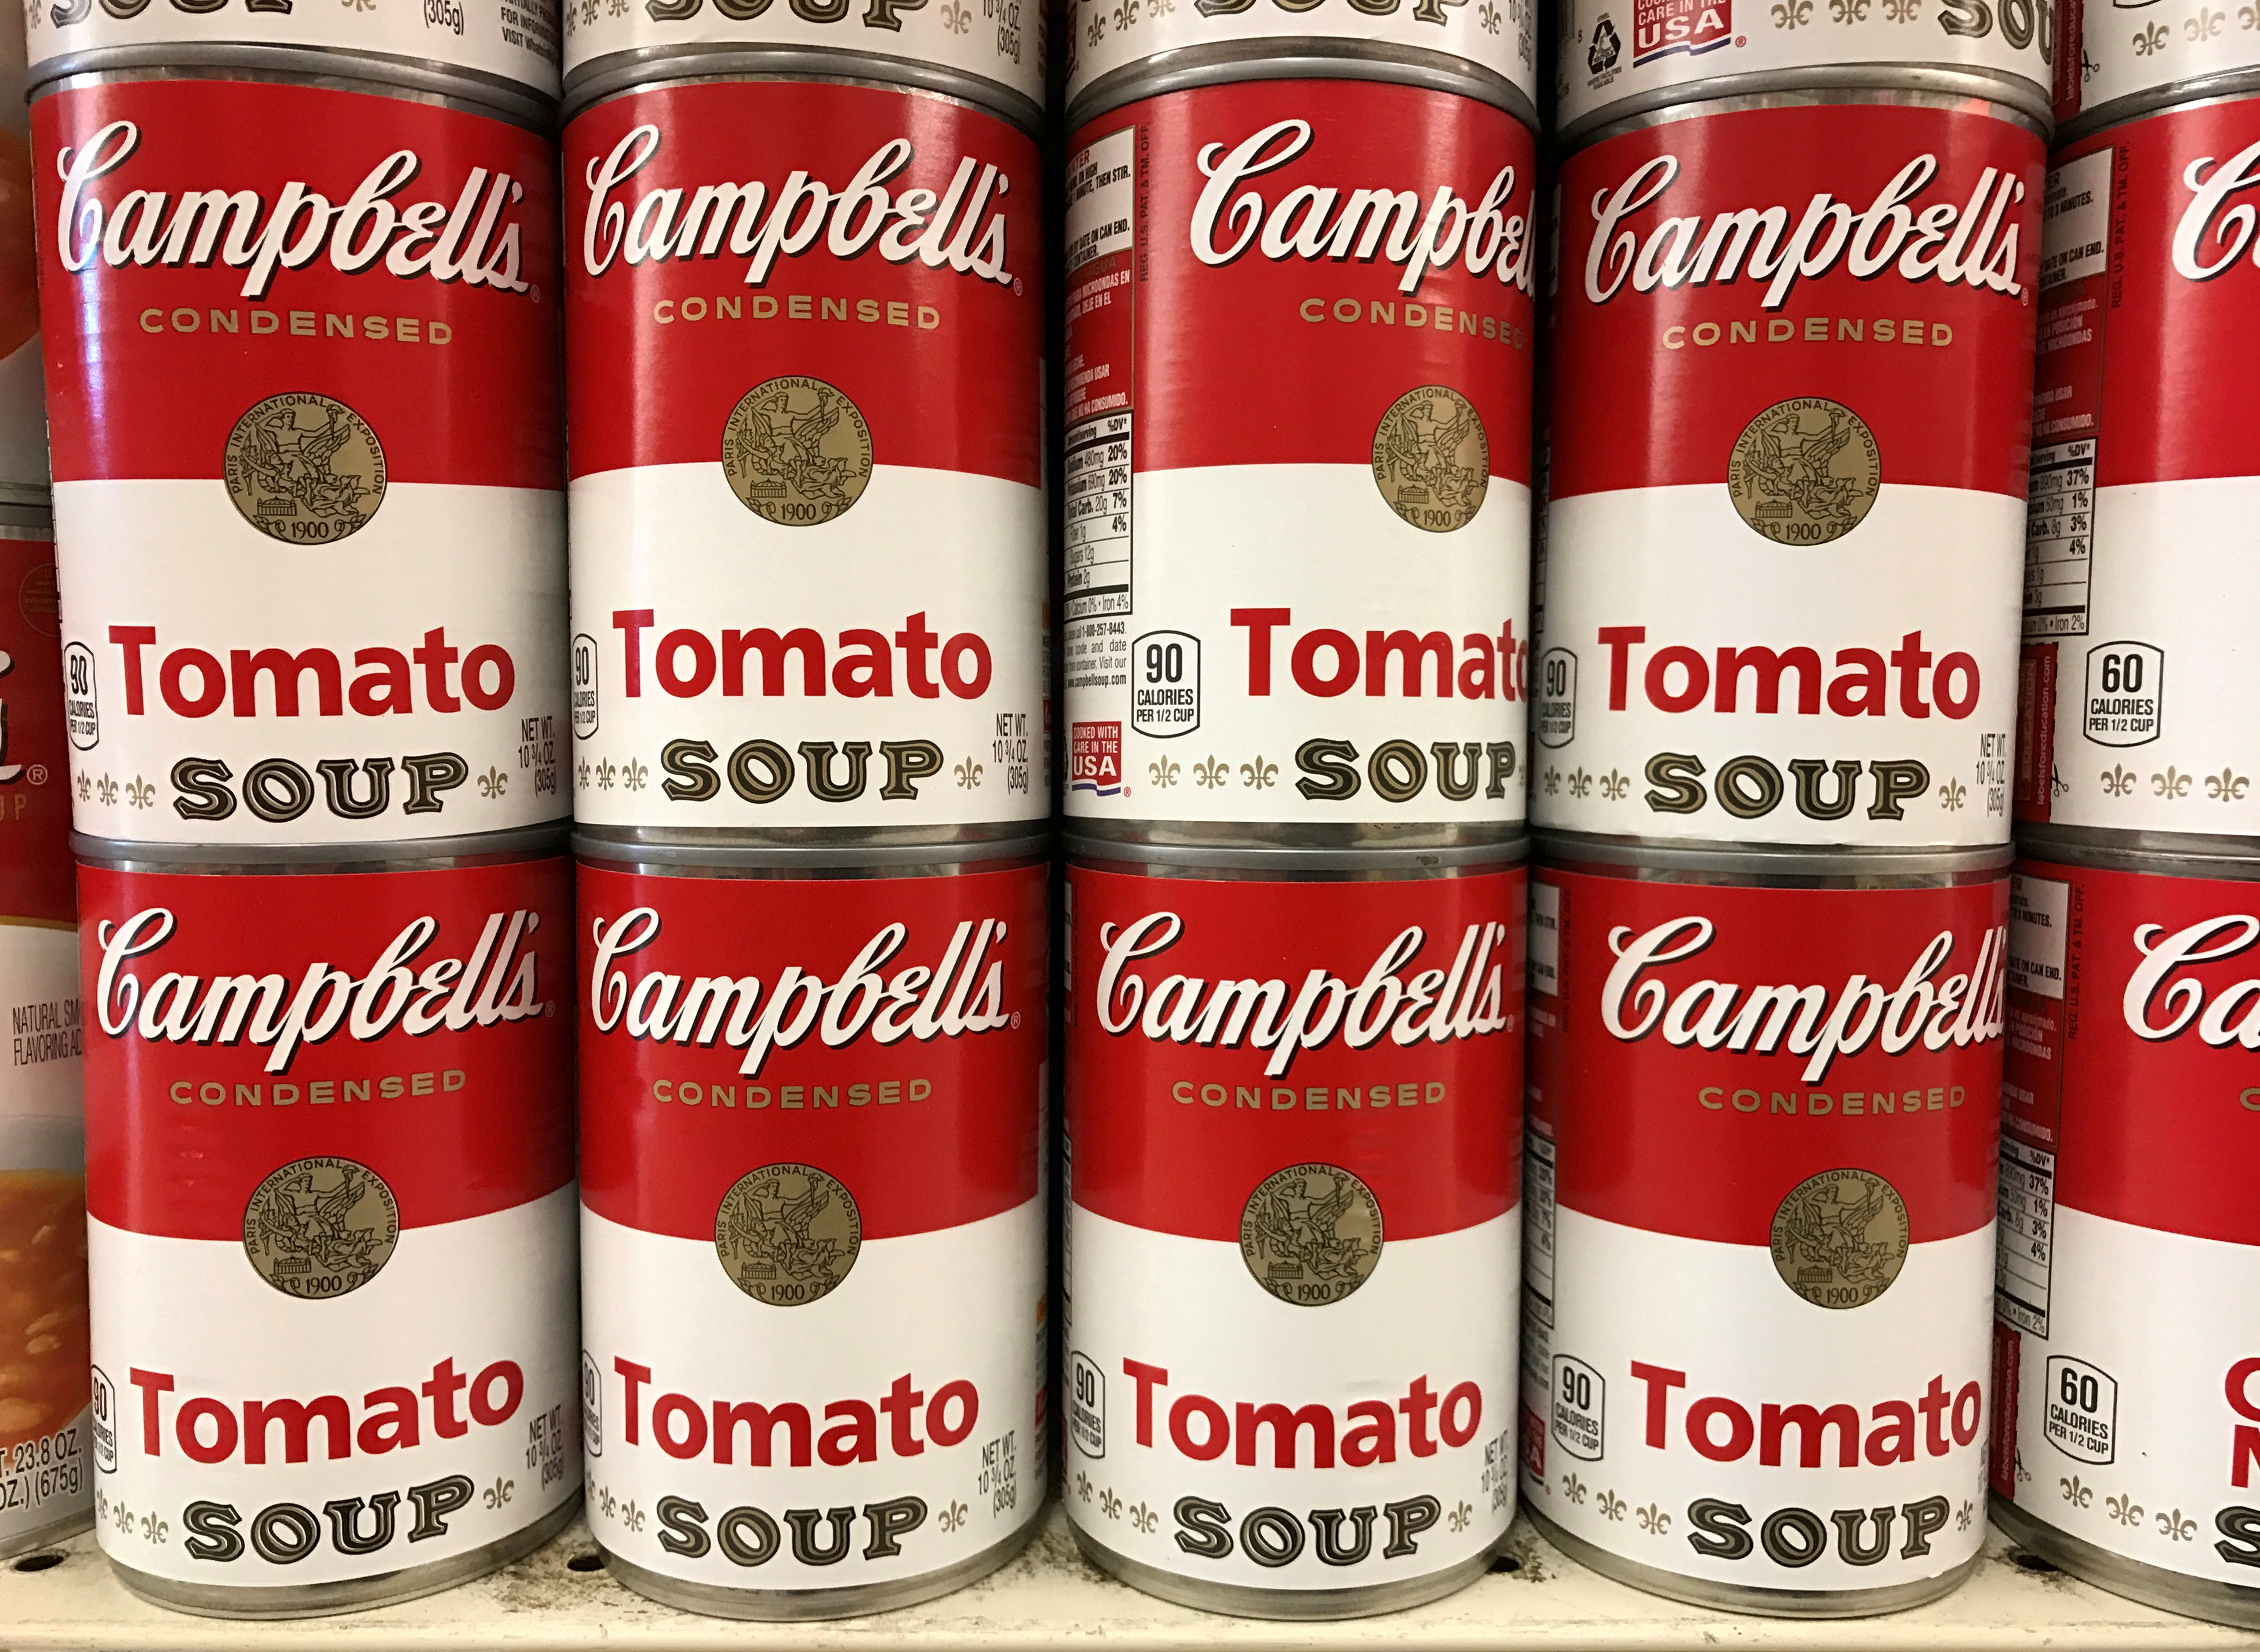 Tins of Campbell's Tomato Soup are seen on a supermarket shelf in Seattle, Washington, U.S. February 10, 2017. REUTERS/Chris Helgren